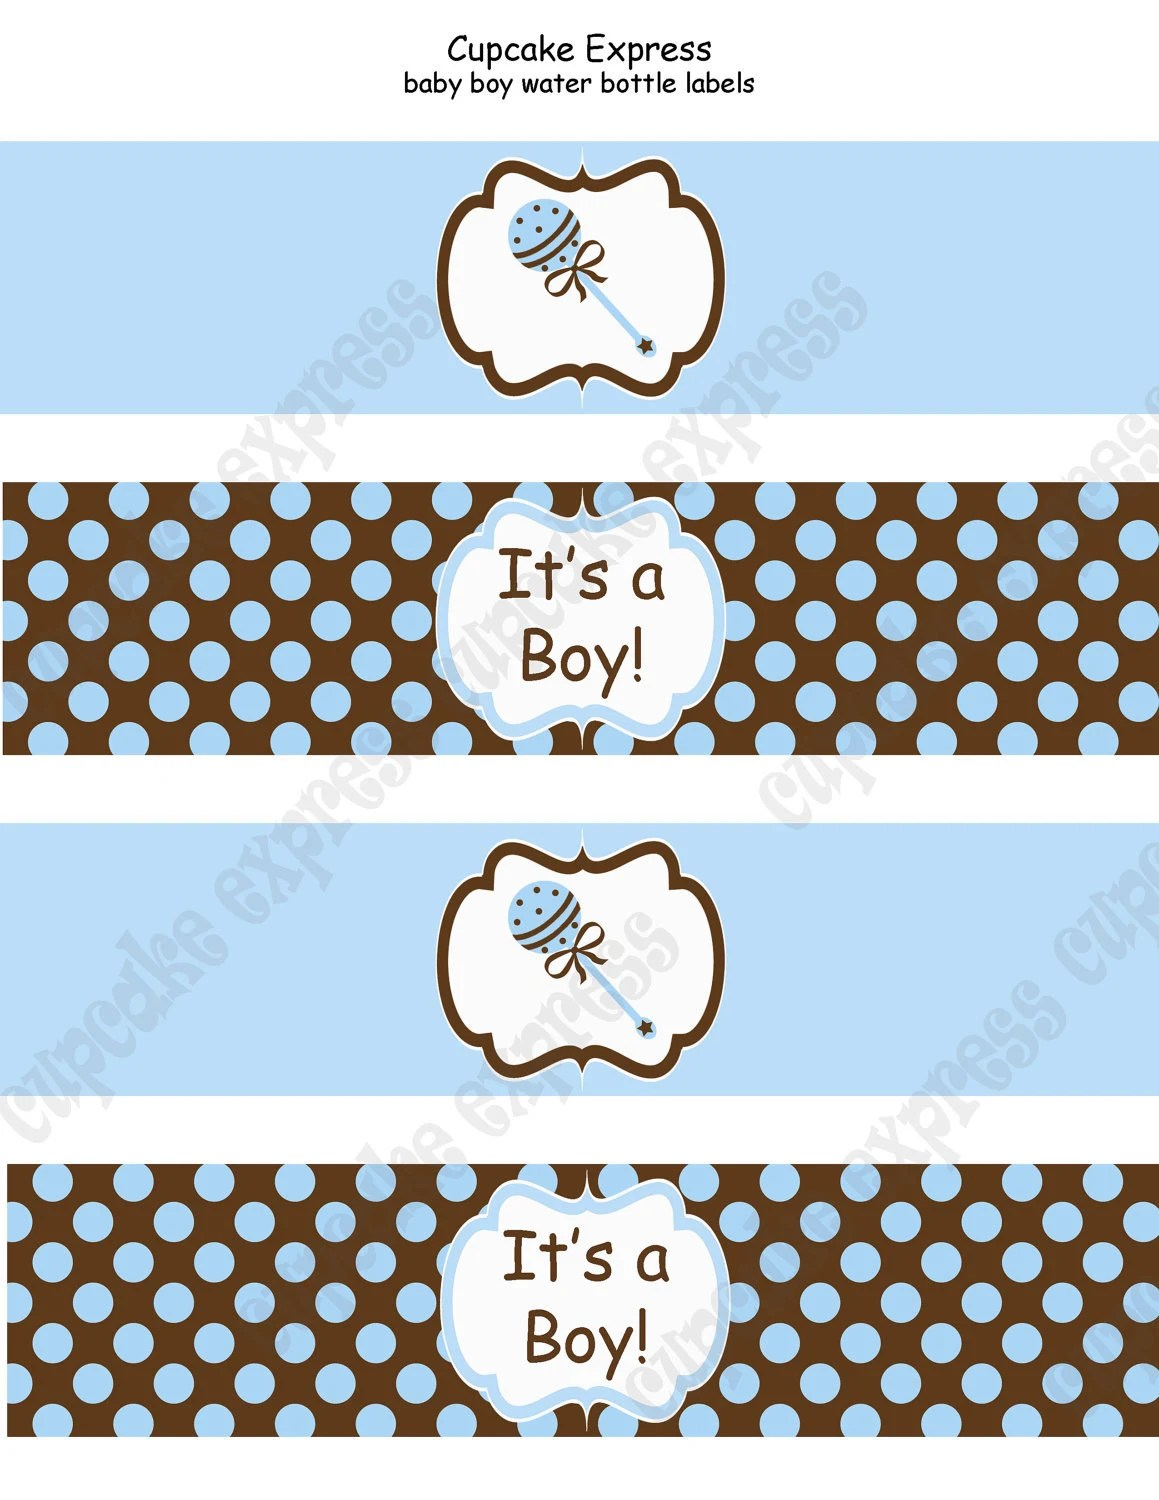 Diy Baby Boy Collection Printable Water Bottle By Cupcakeexpress